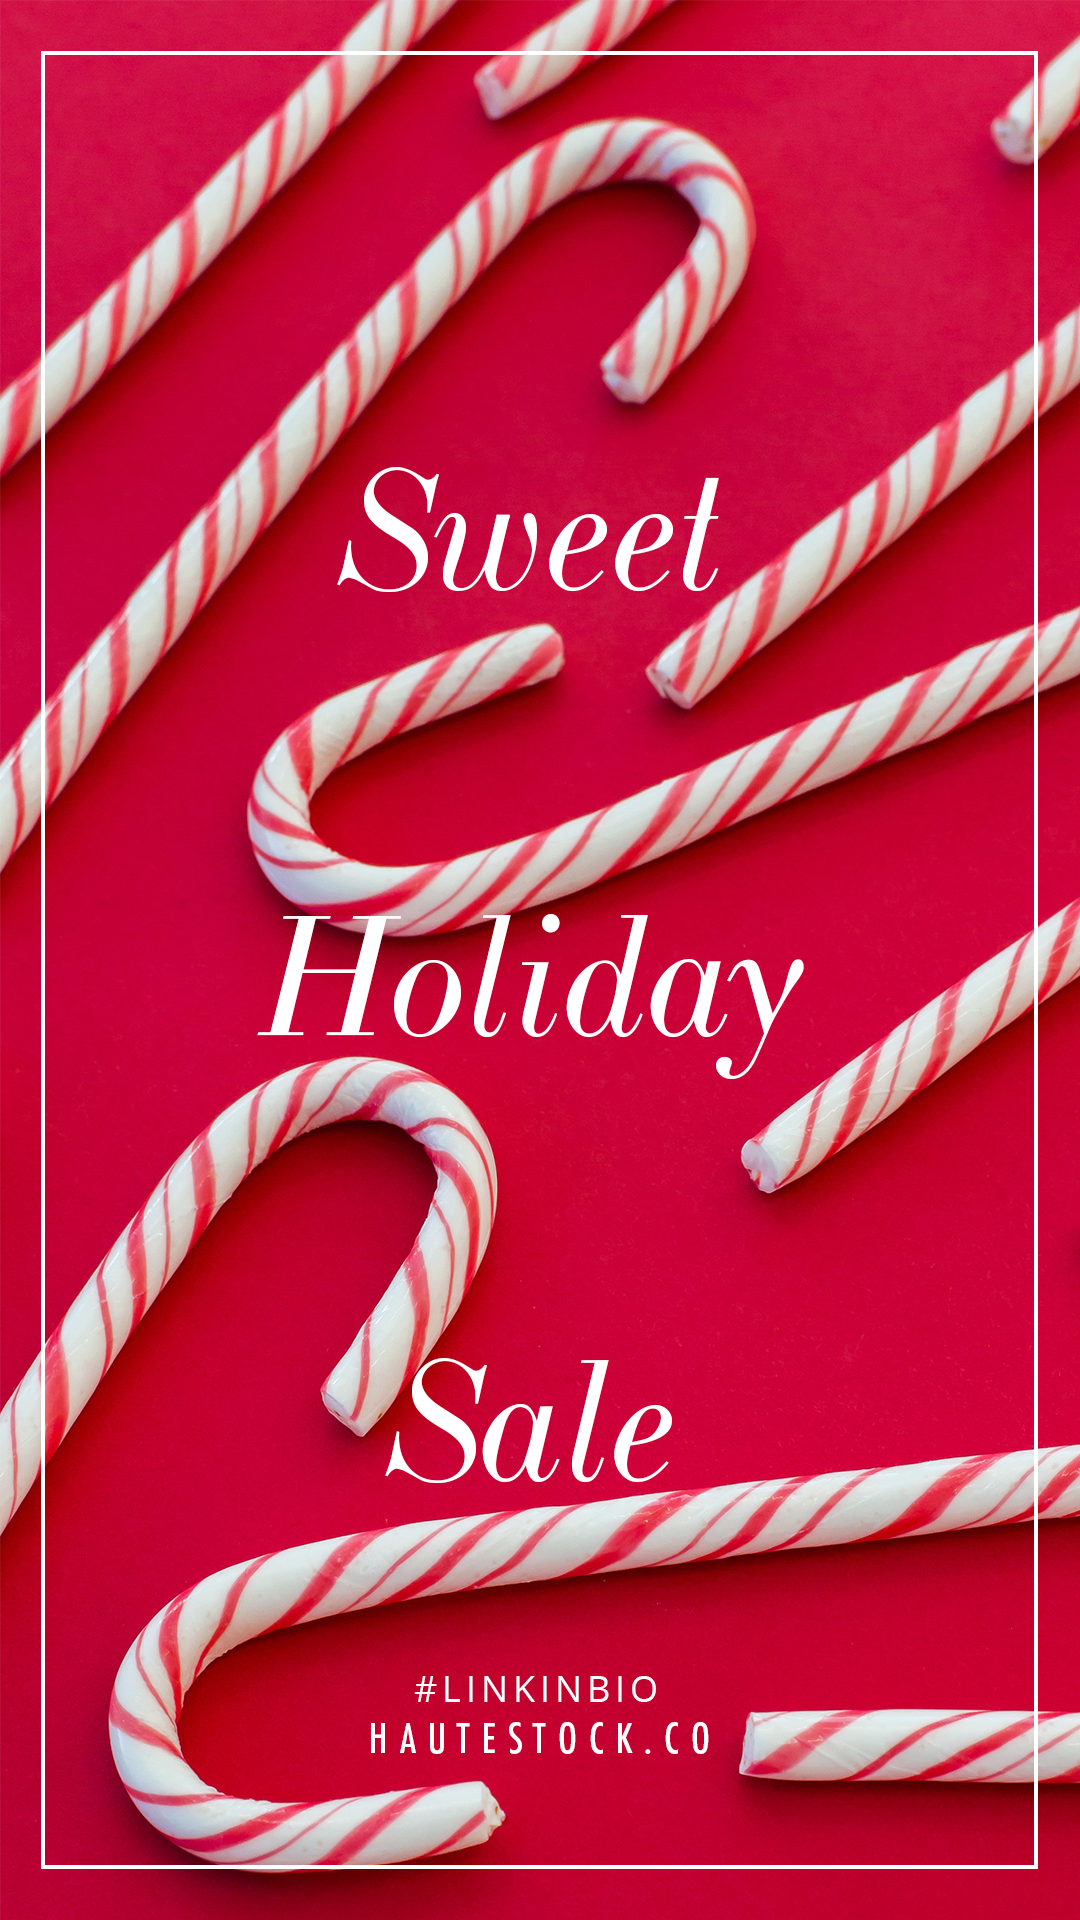 Create scroll-stopping graphics for your business' holiday sale with Haute Stock's holiday images.